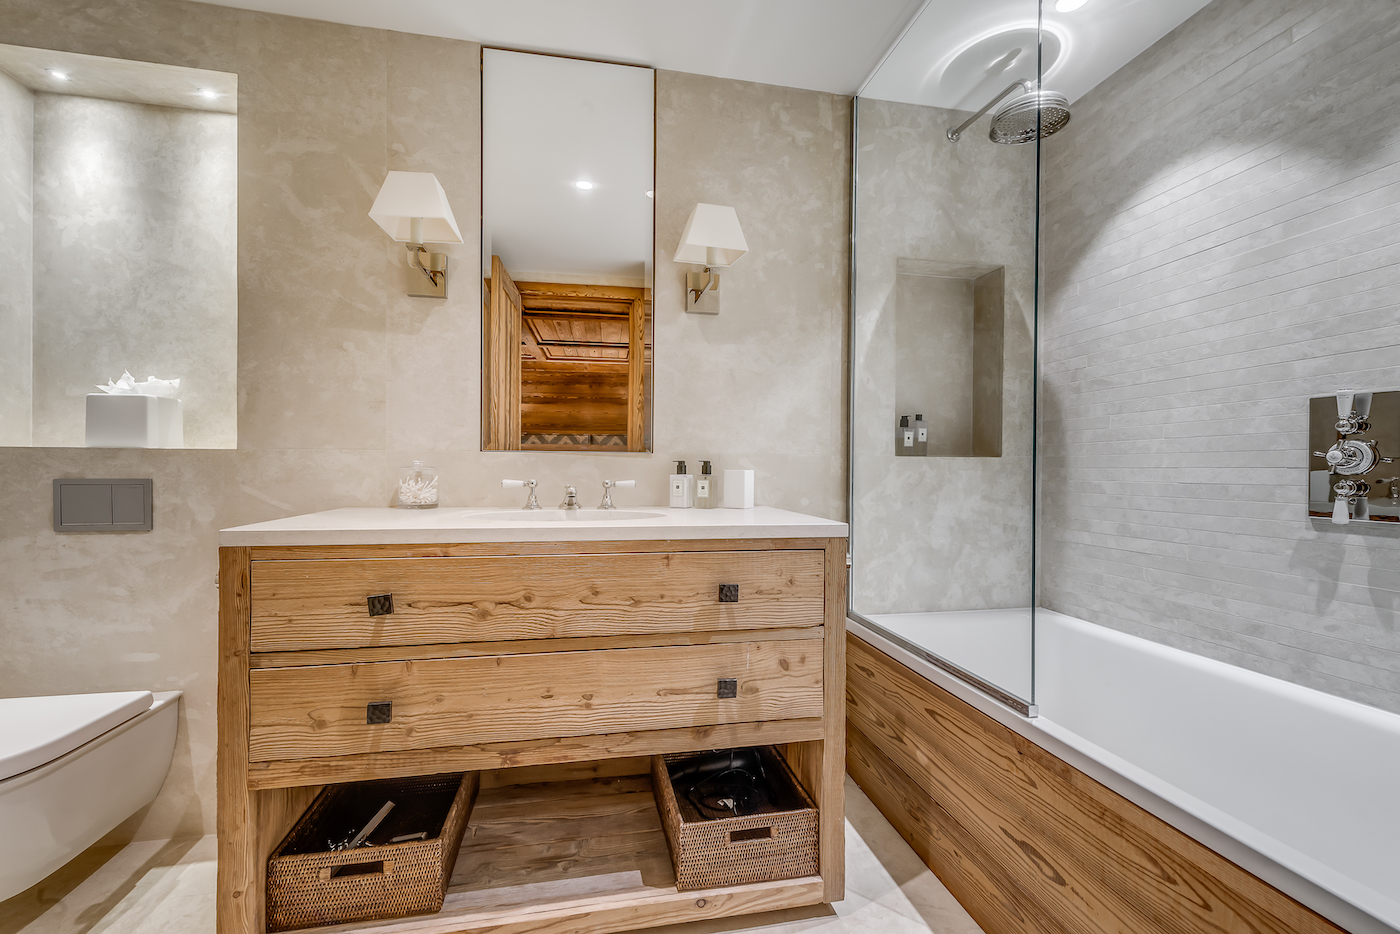 petit-chamois-bedroom-3-bathroom